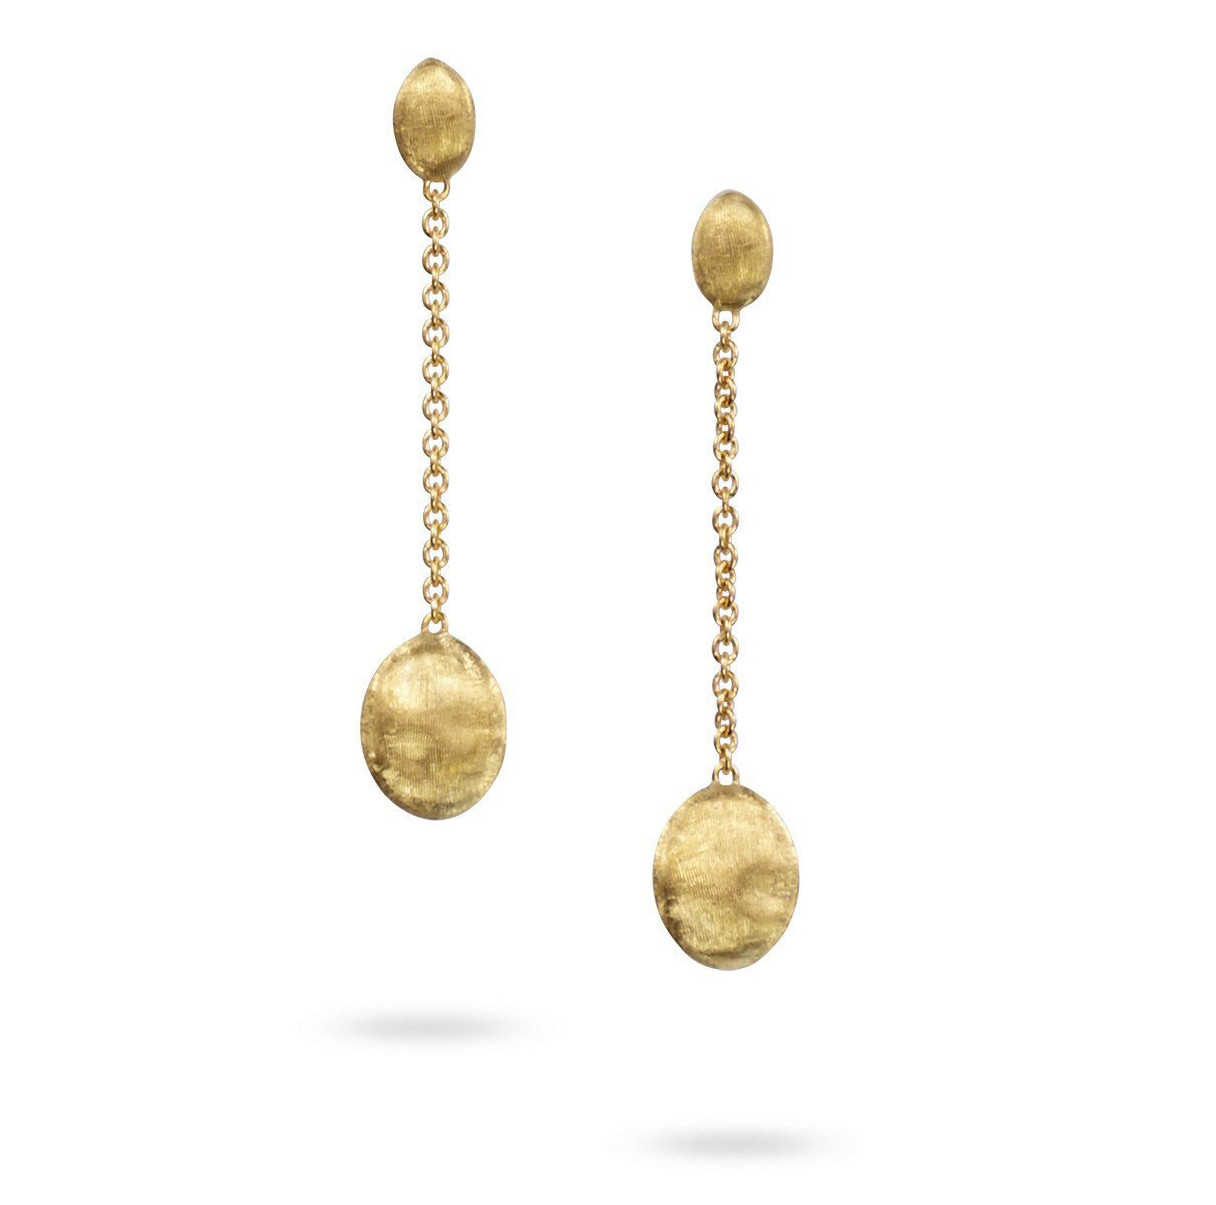 Marco Bicego Sivilgia 18kt Yellow Gold 1 Strand Earrings